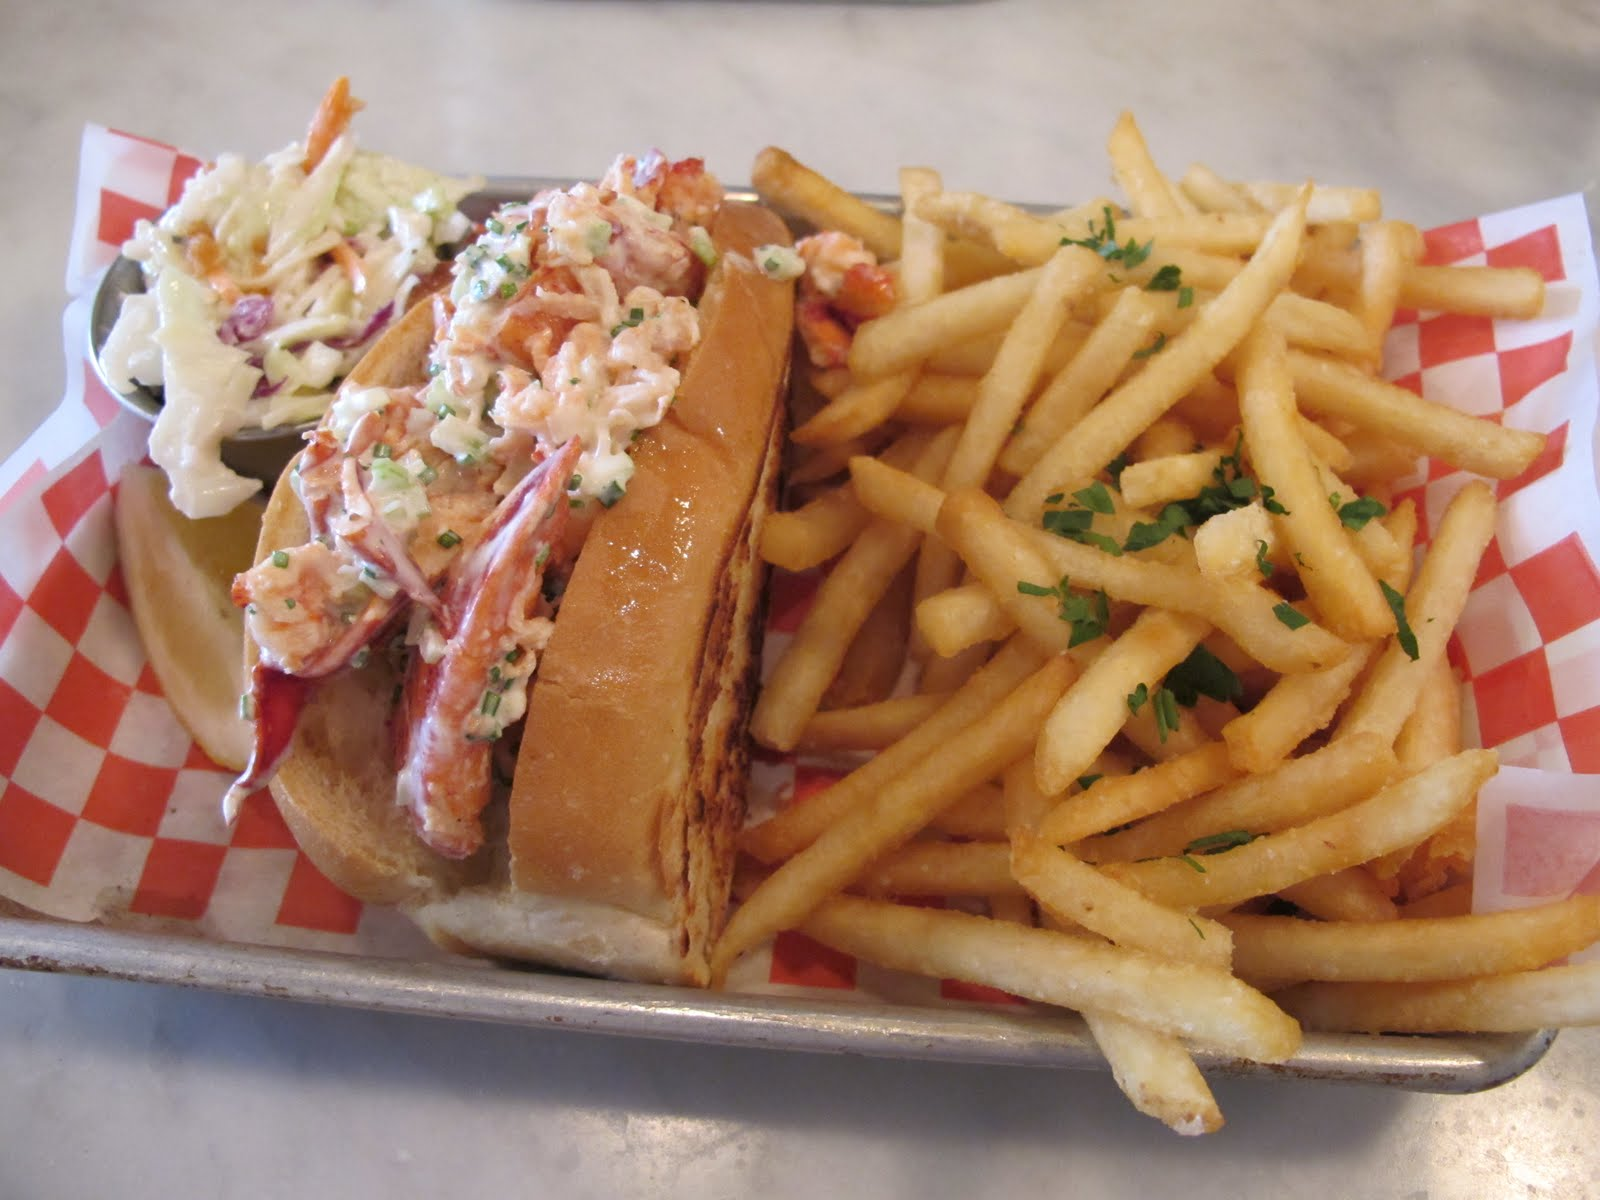 Classy eats woodhouse fish co lower pacific heights sf for Woodhouse fish co